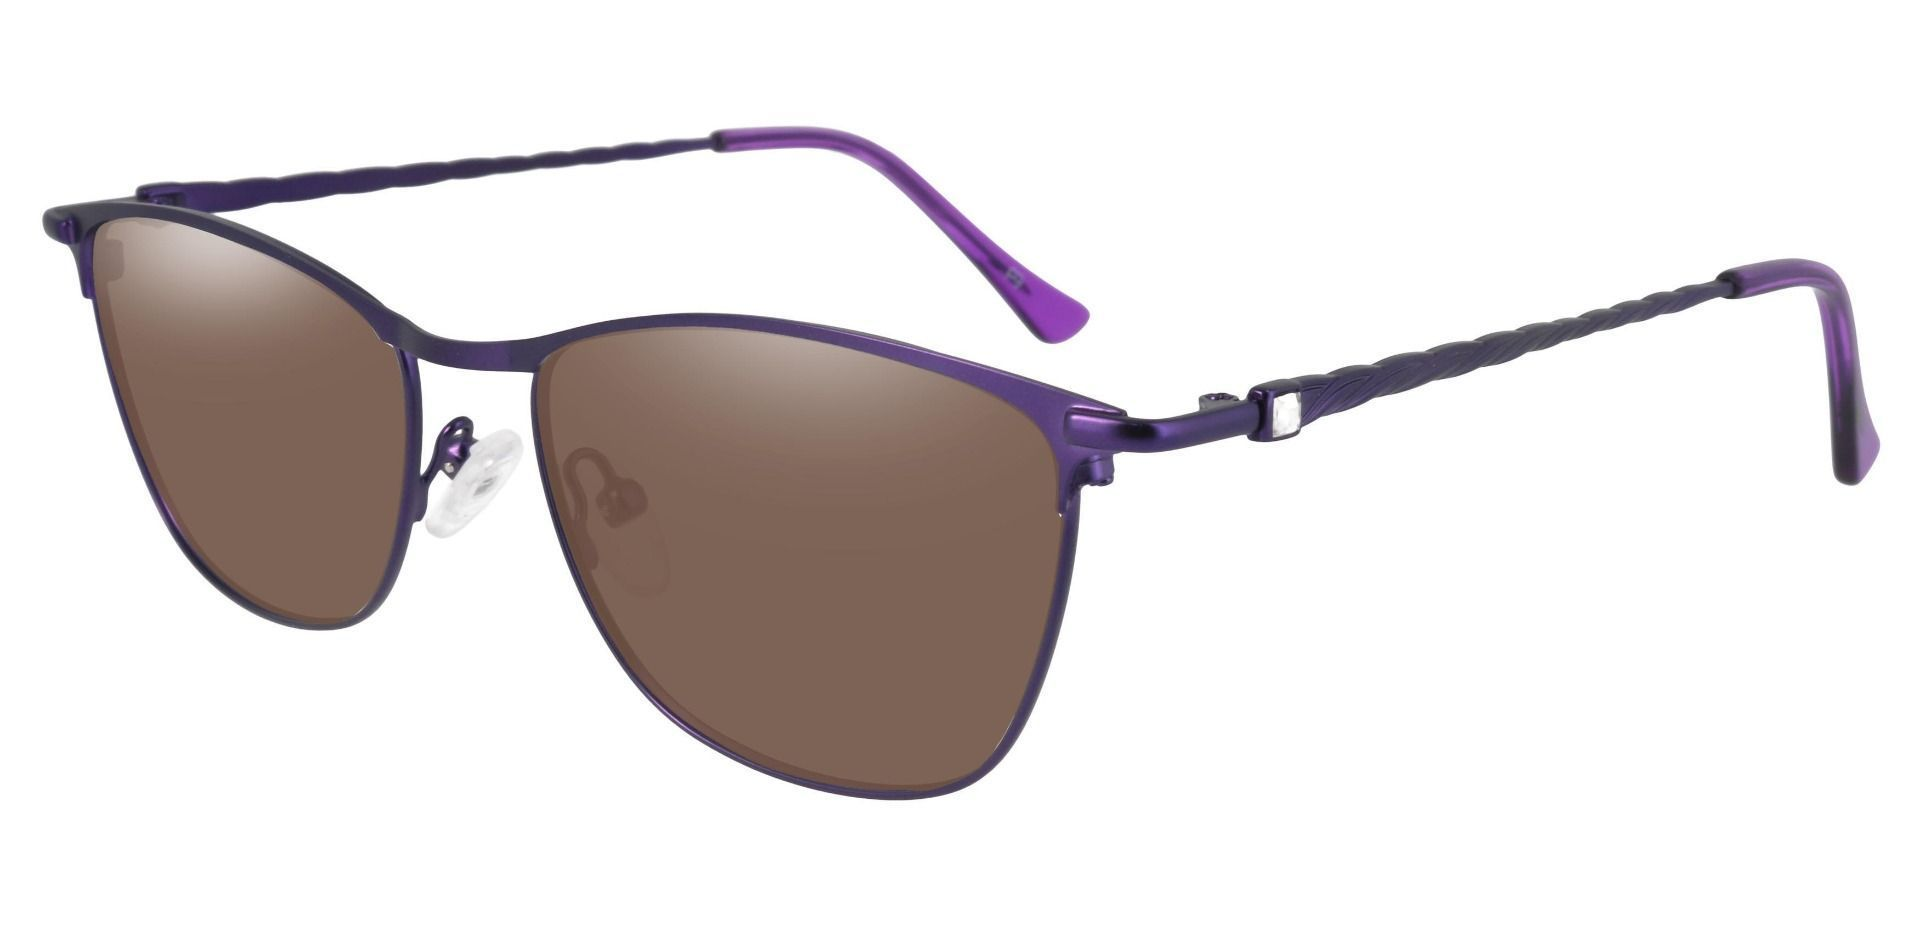 Andrea Cat Eye Non-Rx Sunglasses - Purple Frame With Brown Lenses